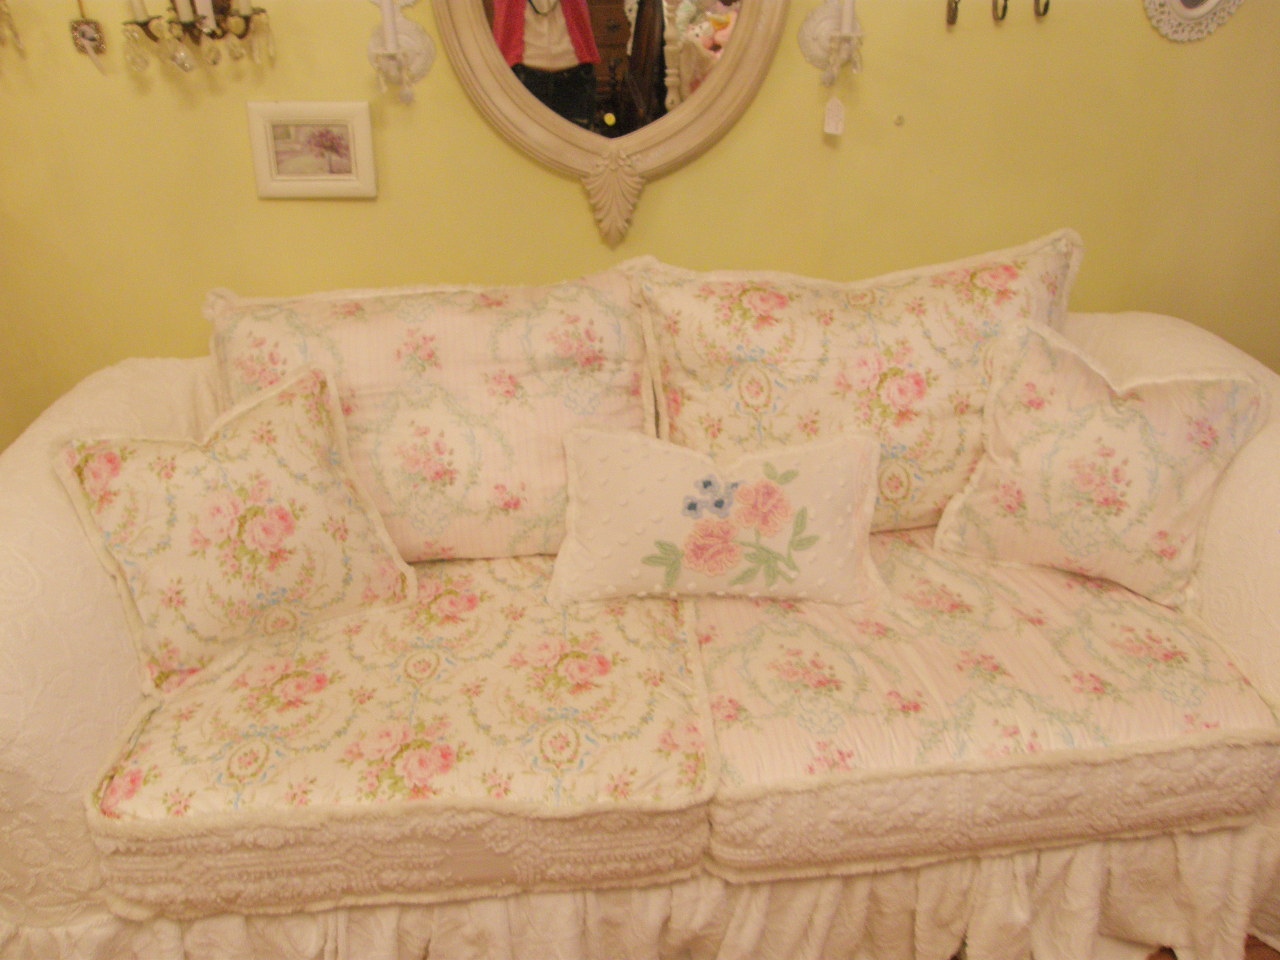 Rose Sofa Slipcover Yellow Leather Set Vintage Chic Furniture Schenectady Ny Omg My New